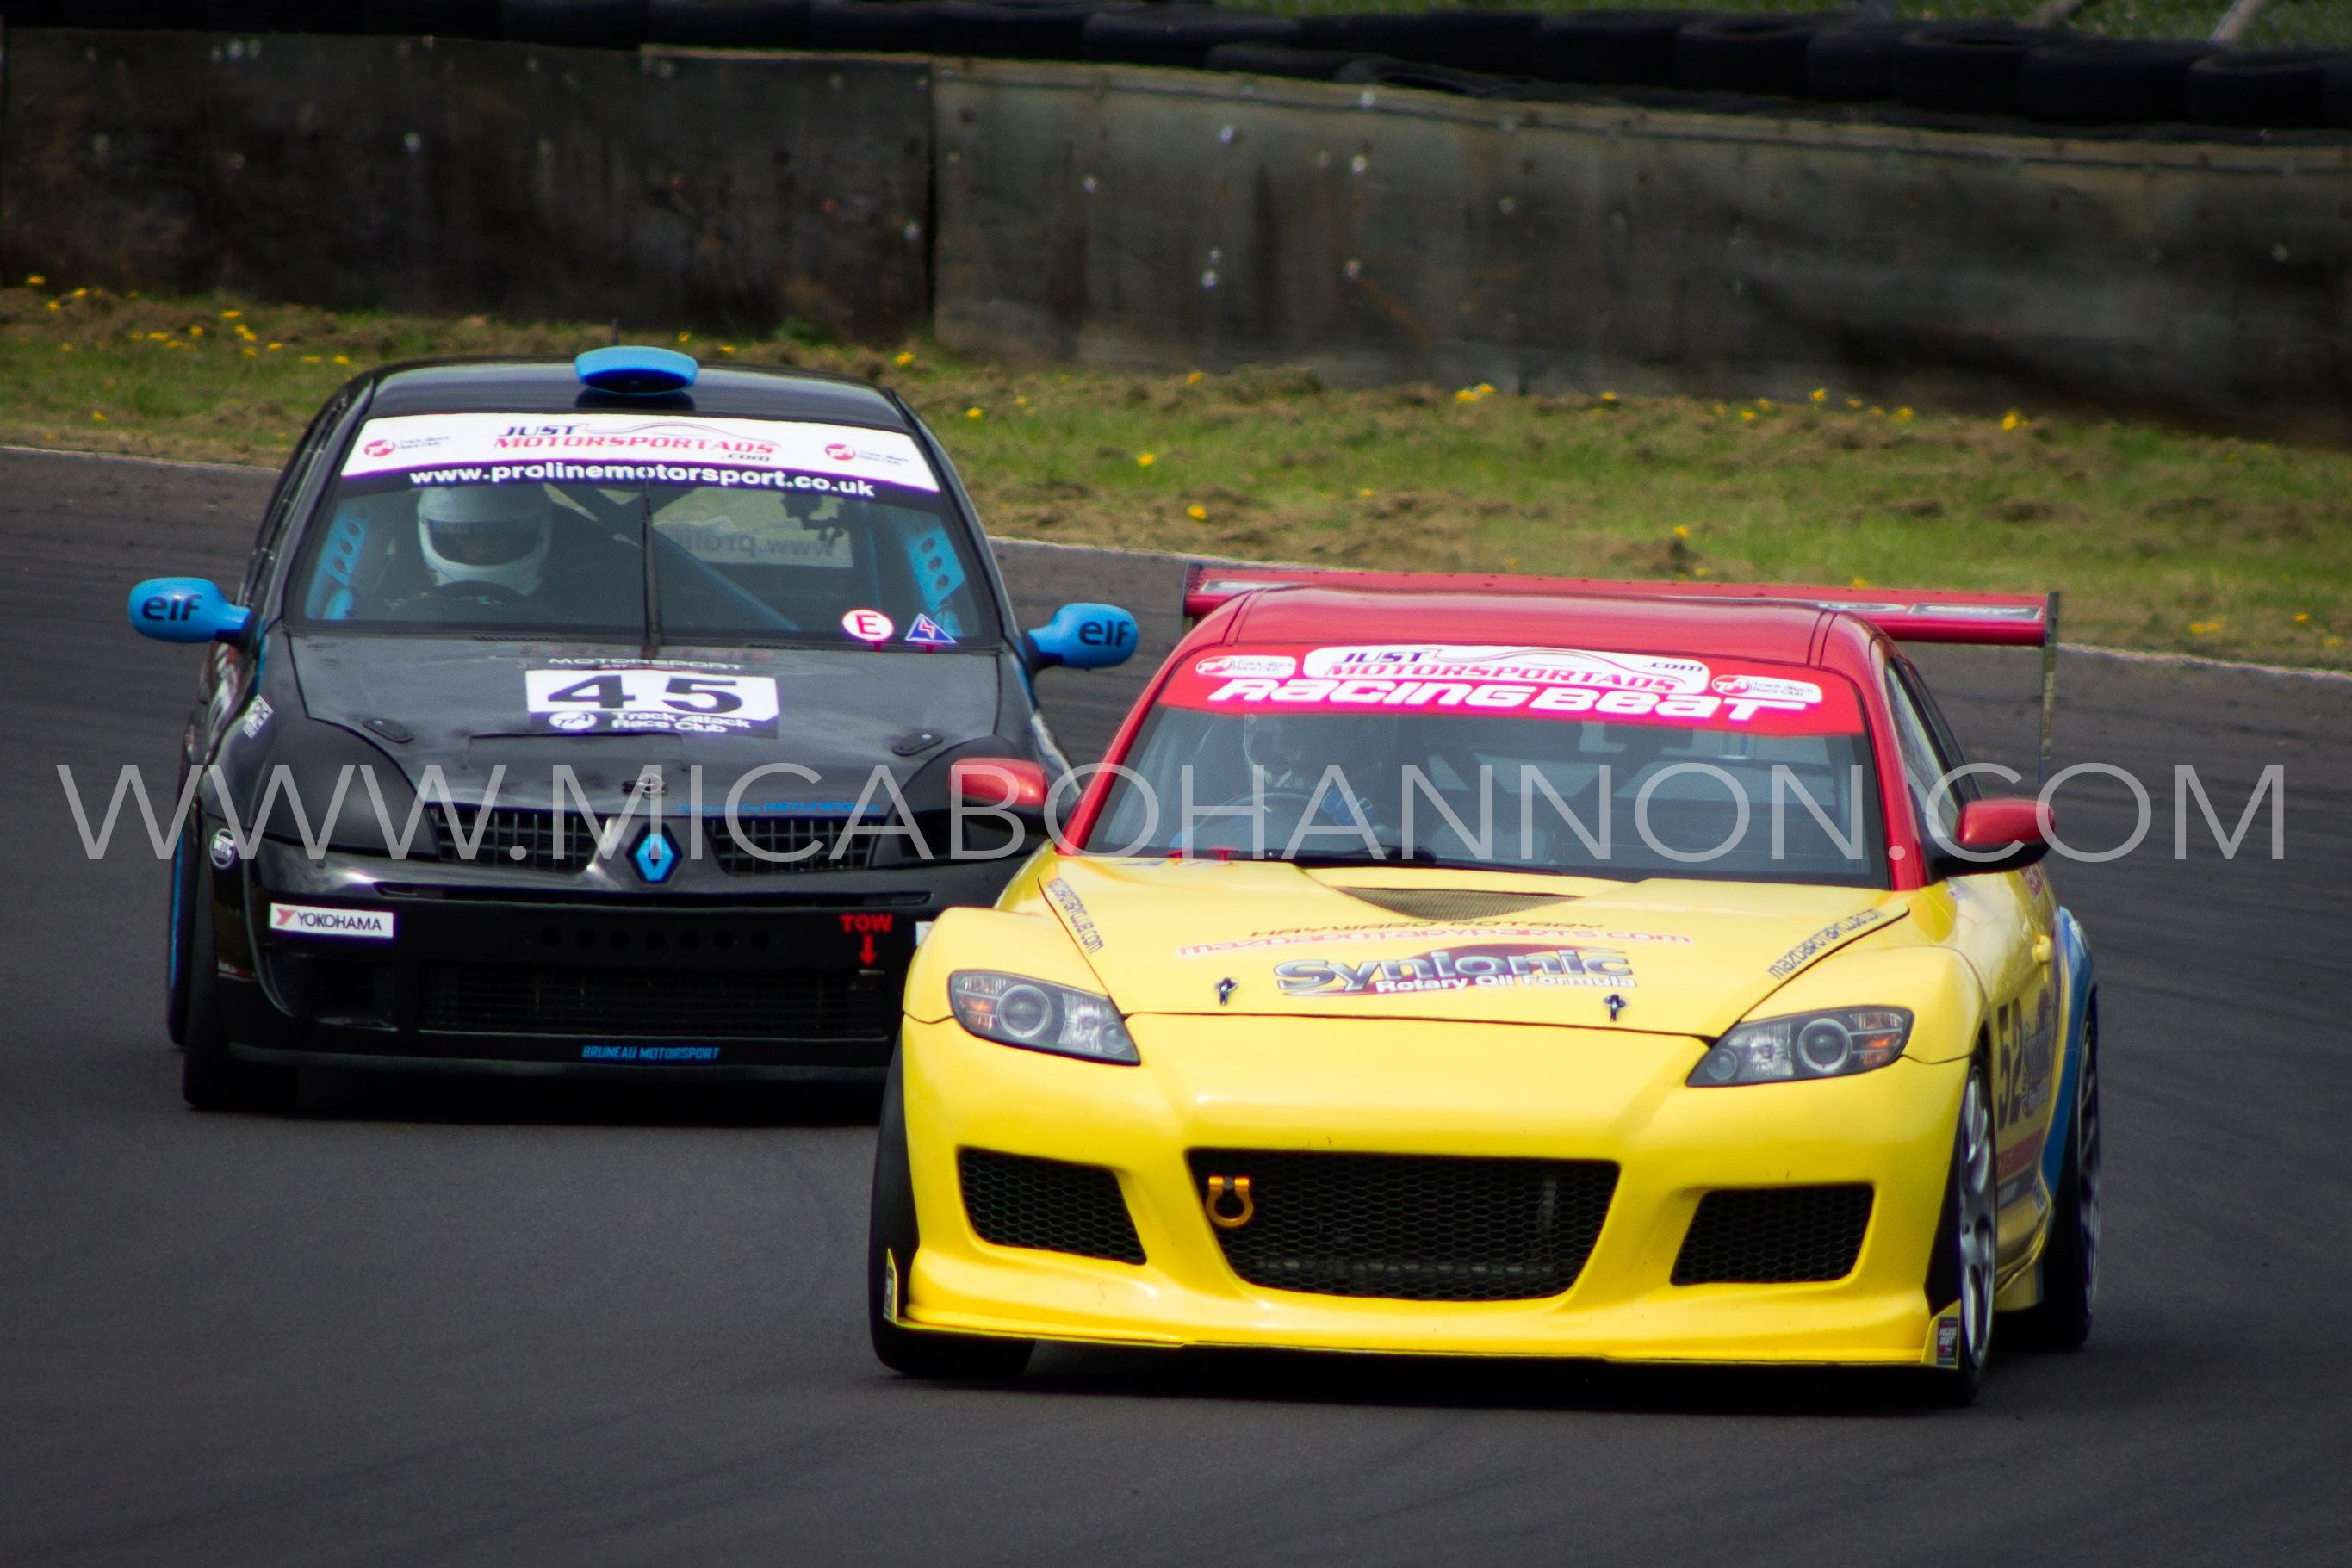 2 cars competing for corner